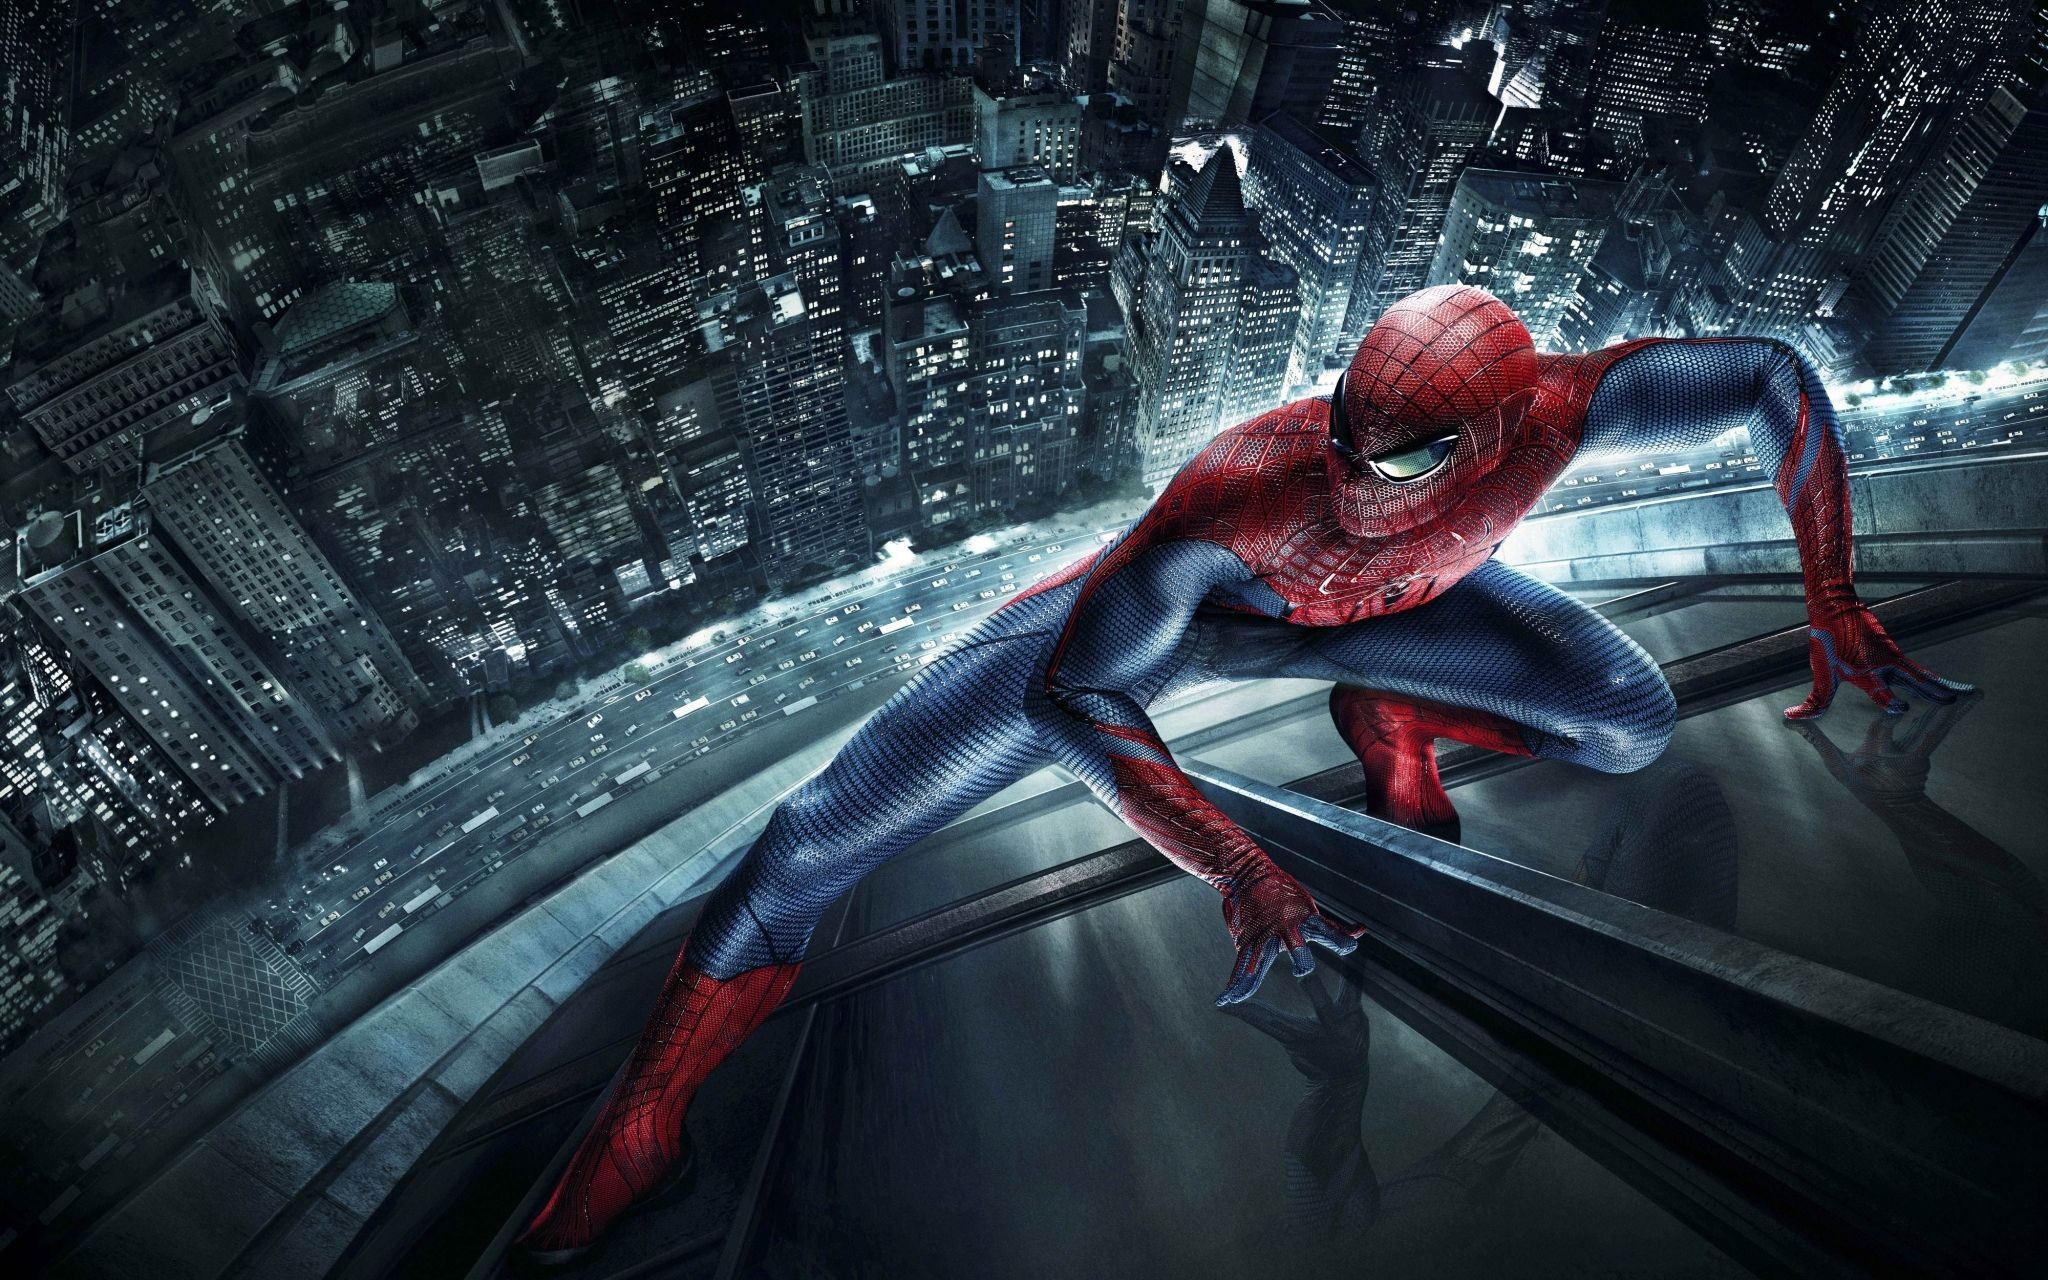 1920x1200 Spiderman pictures, spiderman wallpapers HD A3 - free full high definition 1920 x 1020 marvel